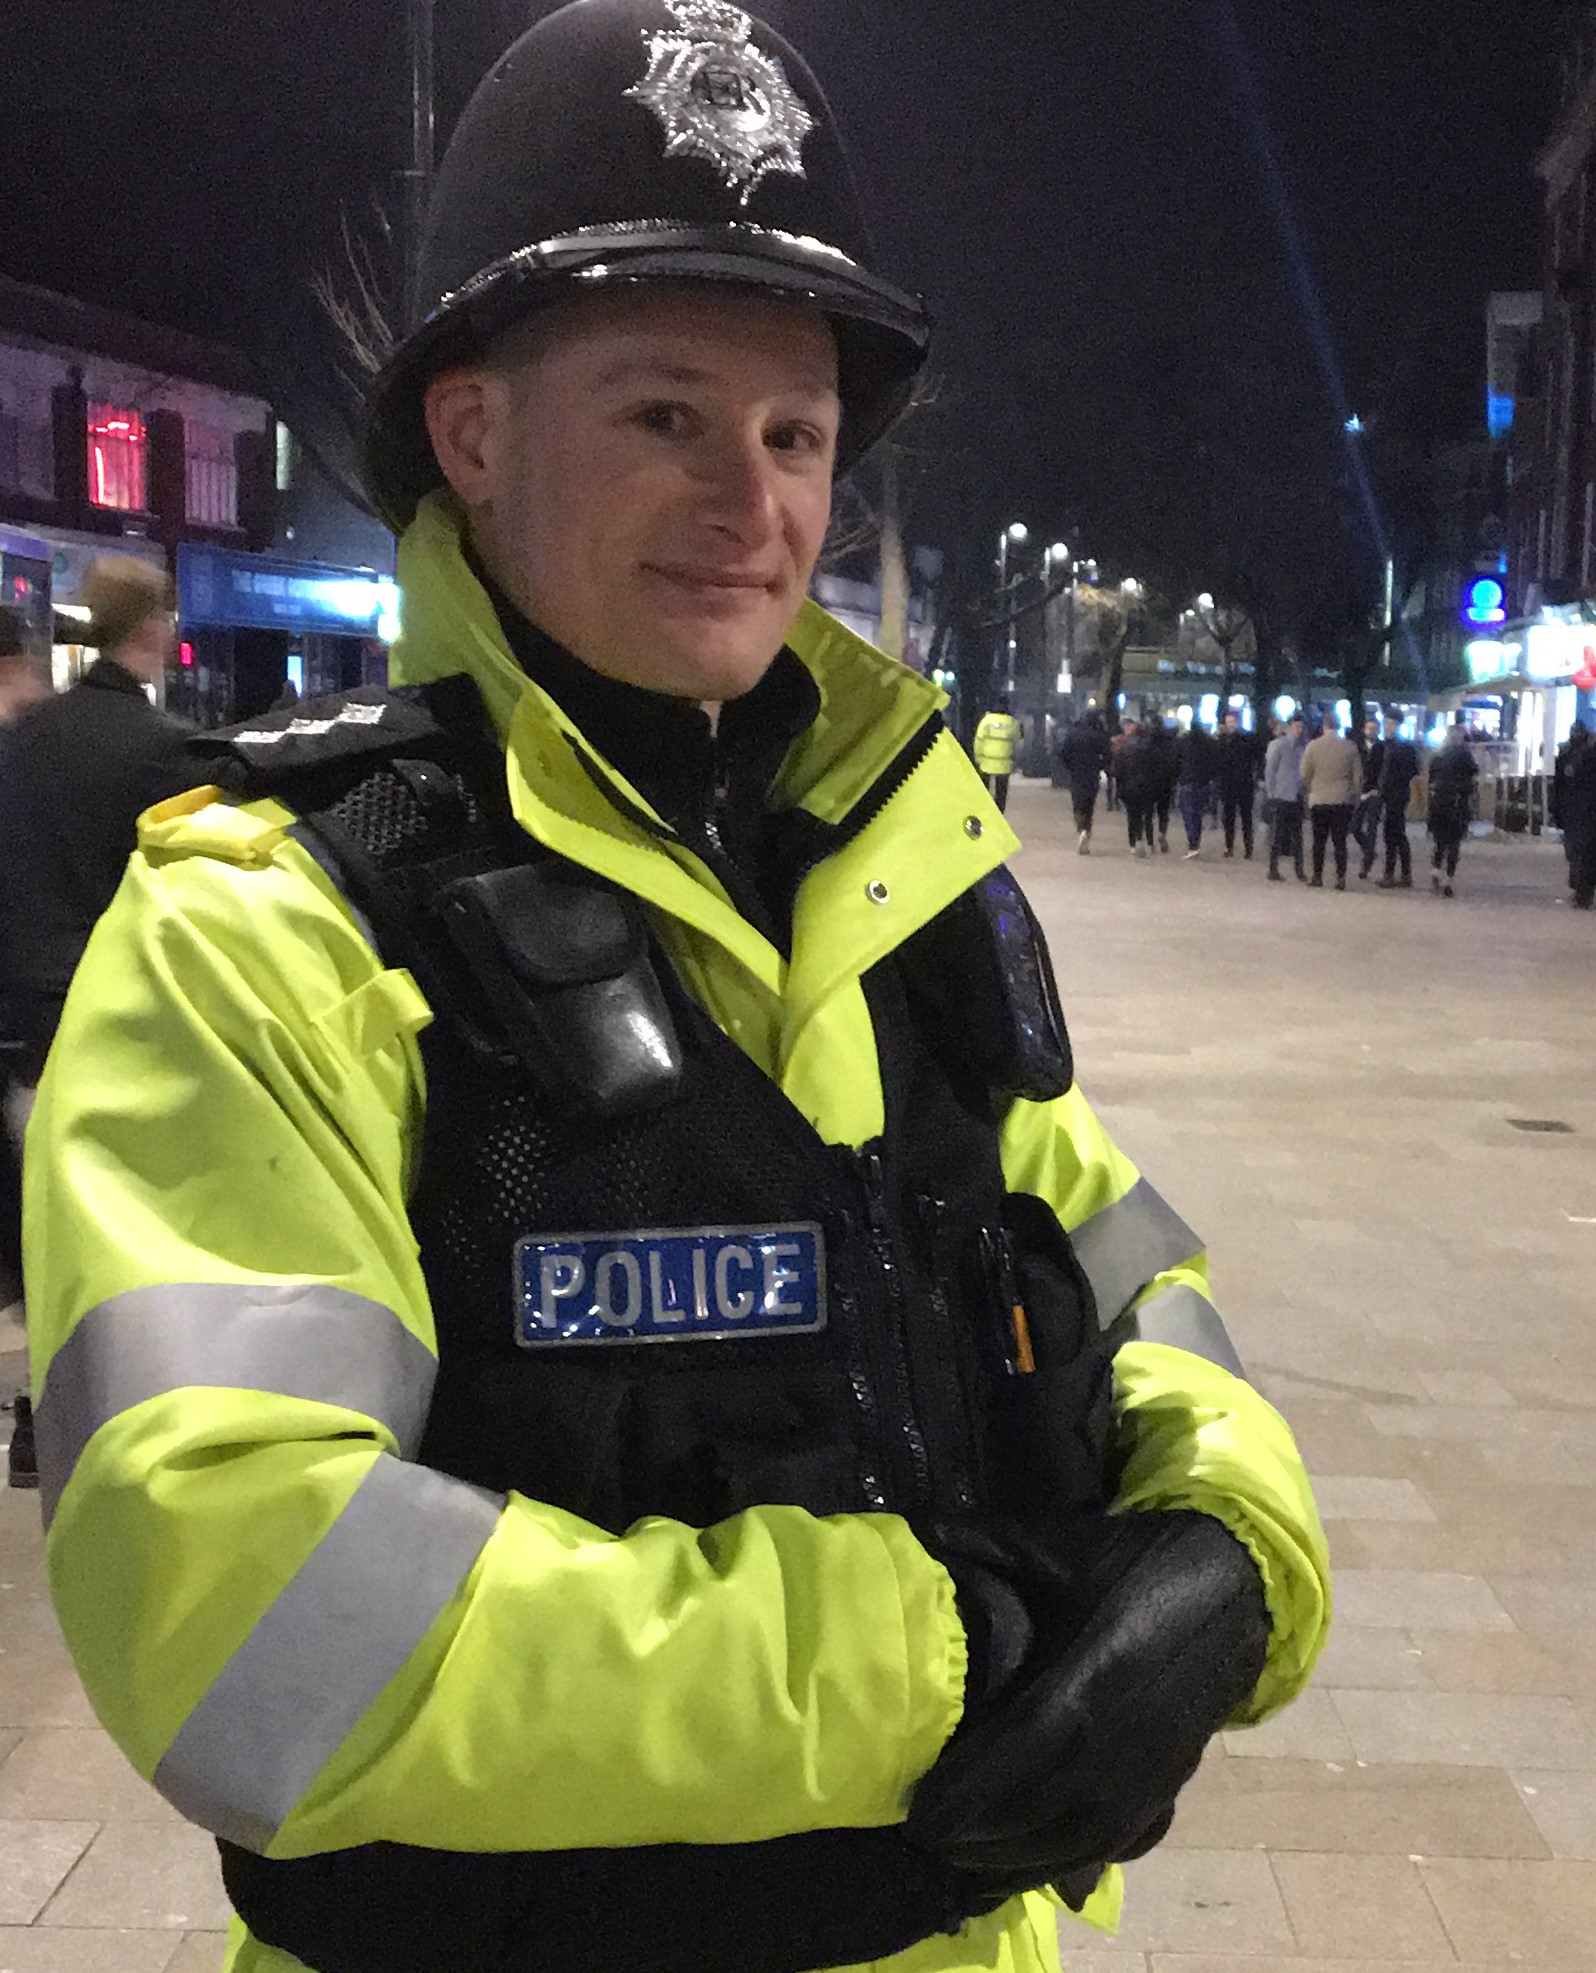 Watford chief inspector Matt Philips